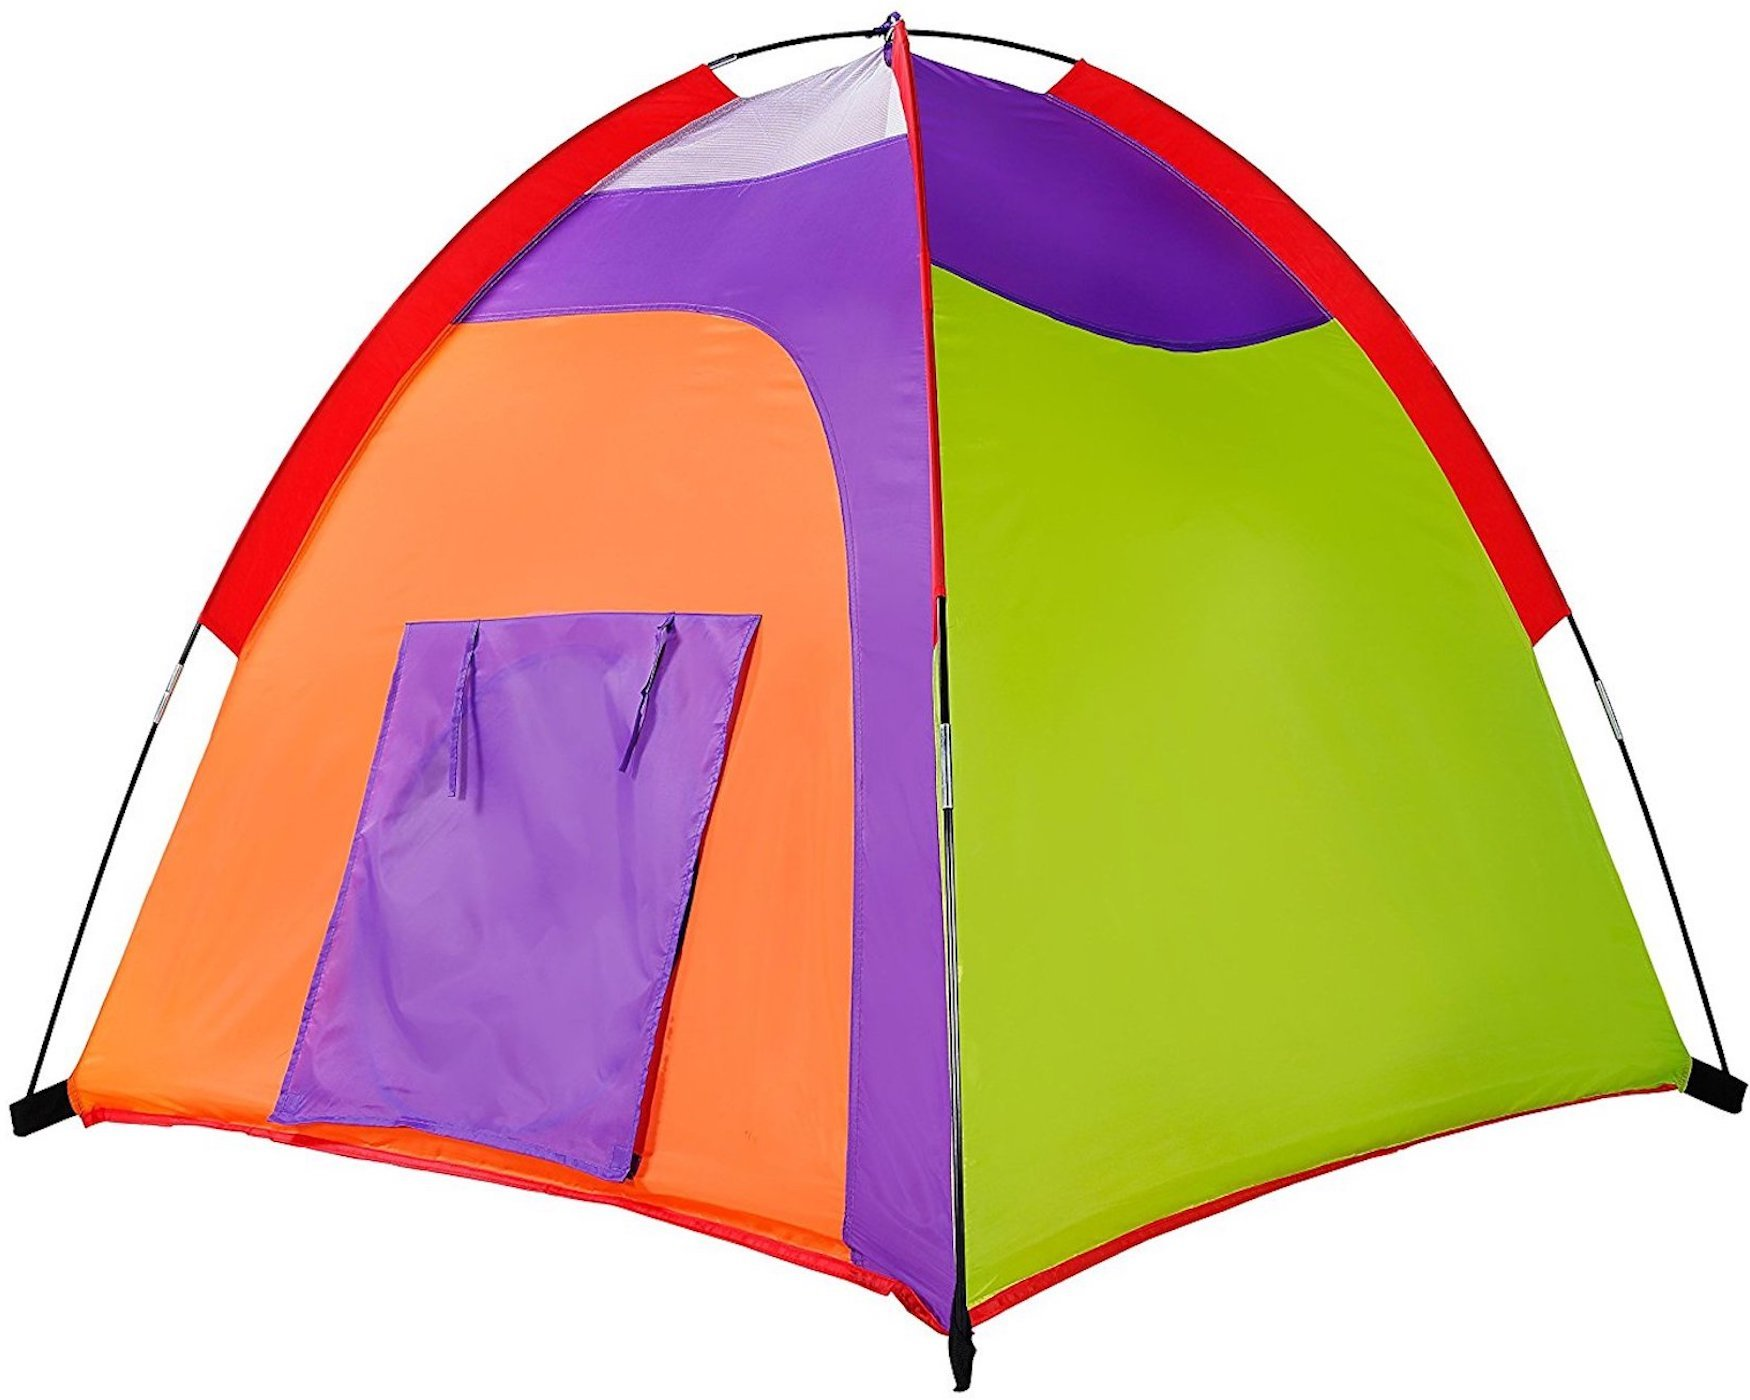 Alvantor Kids Tent Indoor Children Play Toy Toddler Pop up Outdoor Games Colourful Curvy Patent, Red, Orange,Purple,Green, 48'' 48'' 42'' by Alvantor